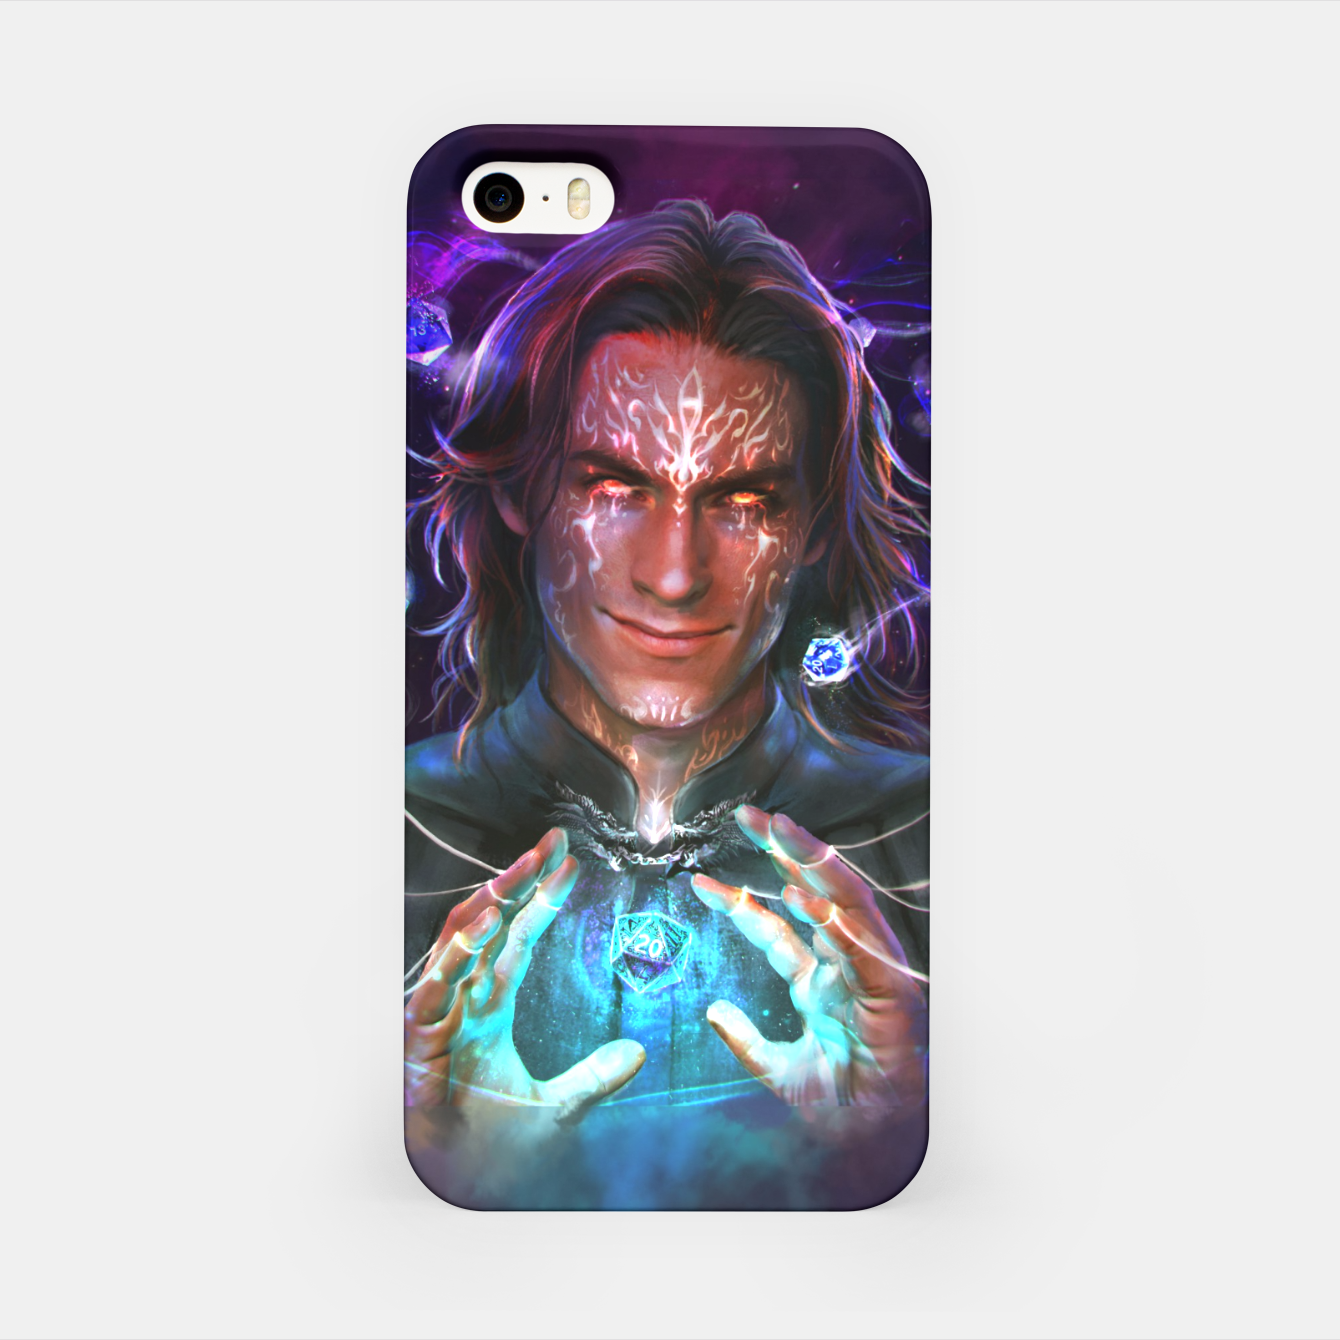 Image of Mercer iPhone Case - Live Heroes